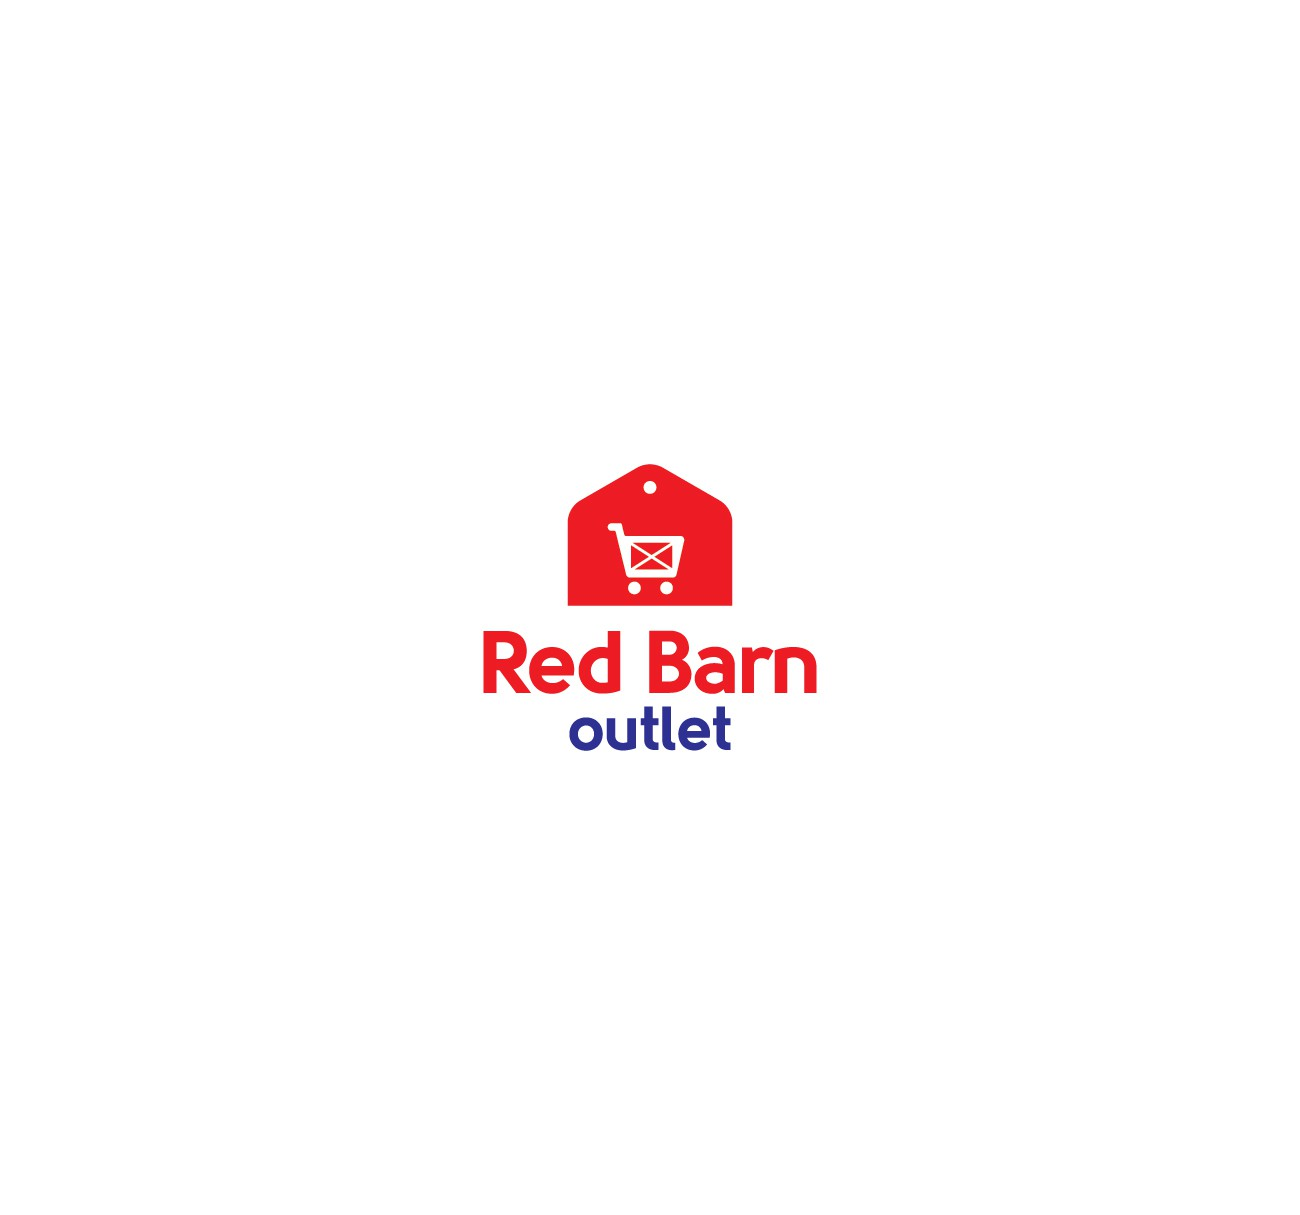 Red Barn Outlet logo & Identity pack